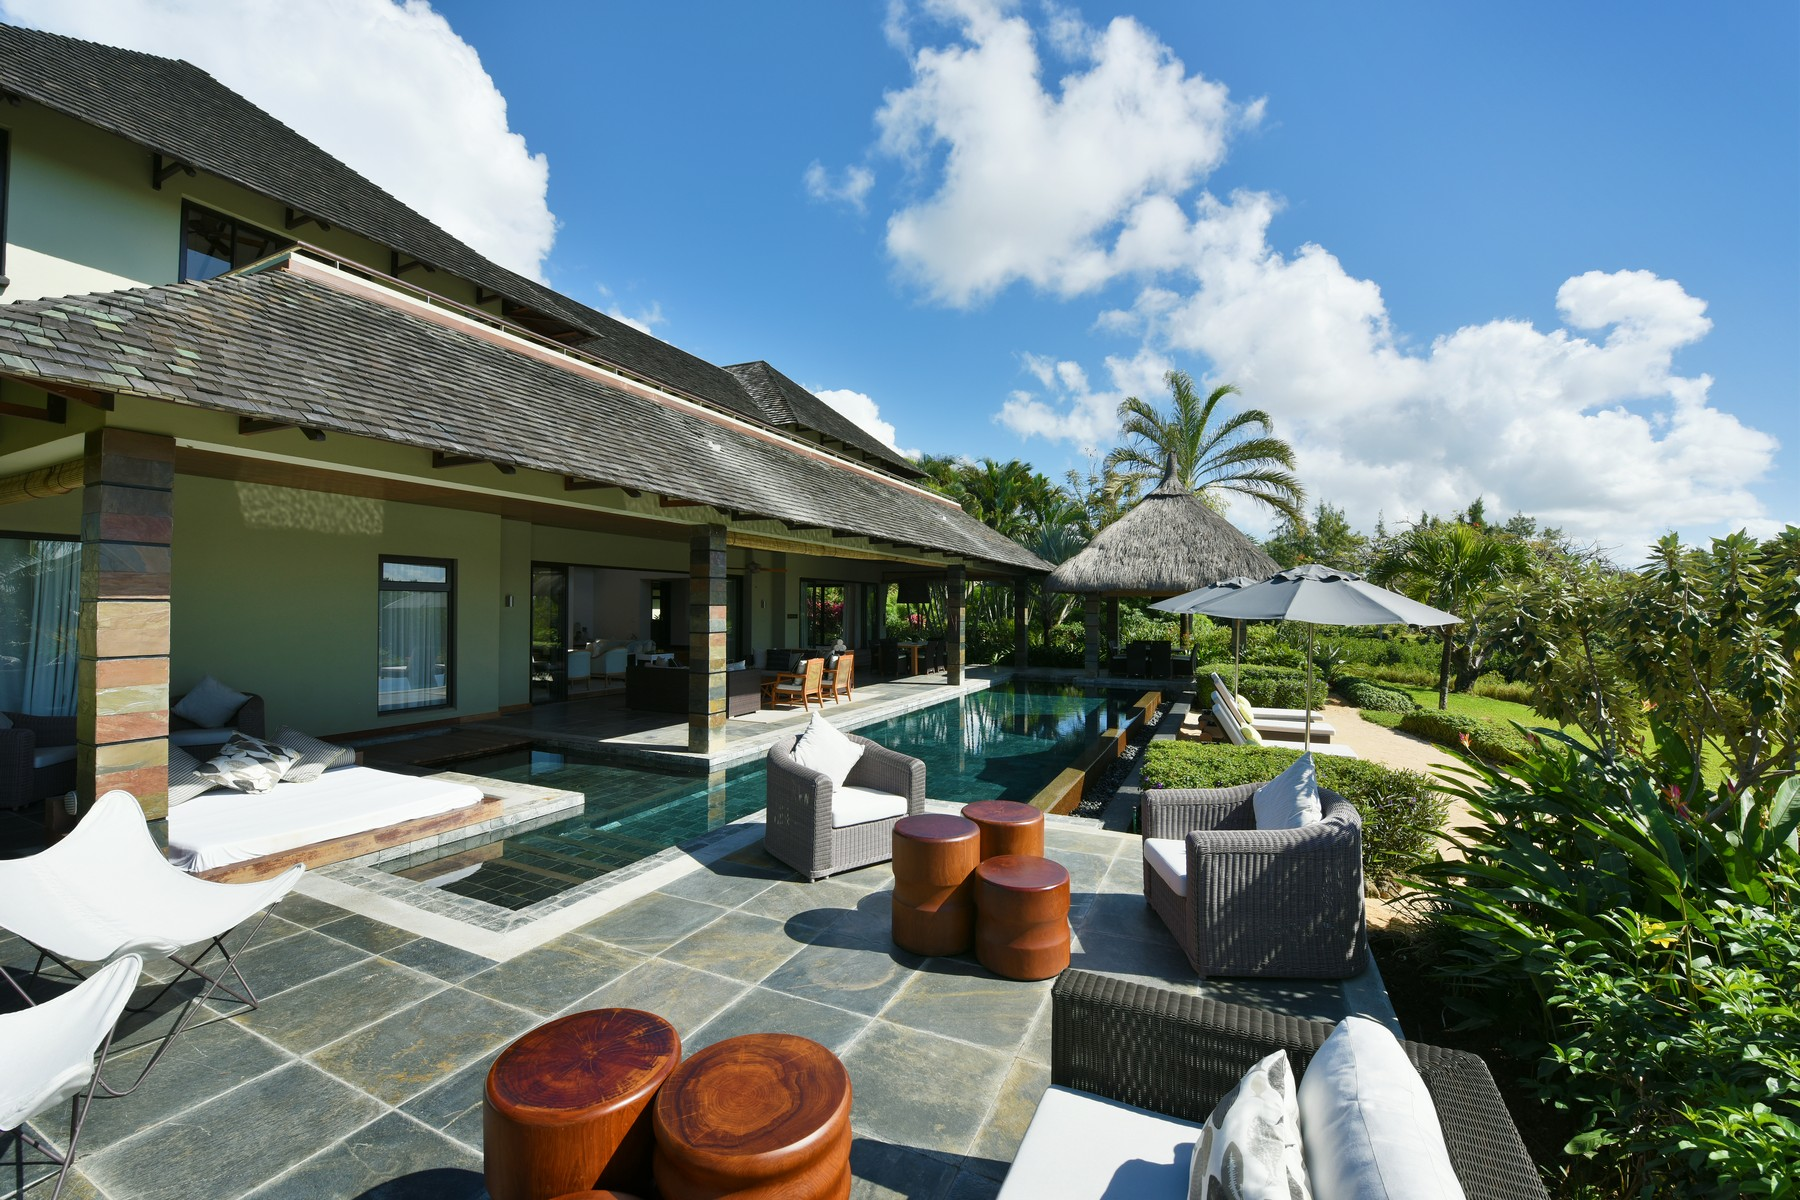 Multi-Family Home for Sale at Sextus Villa Other Riviere Du Rempart, Riviere Du Rempart Mauritius